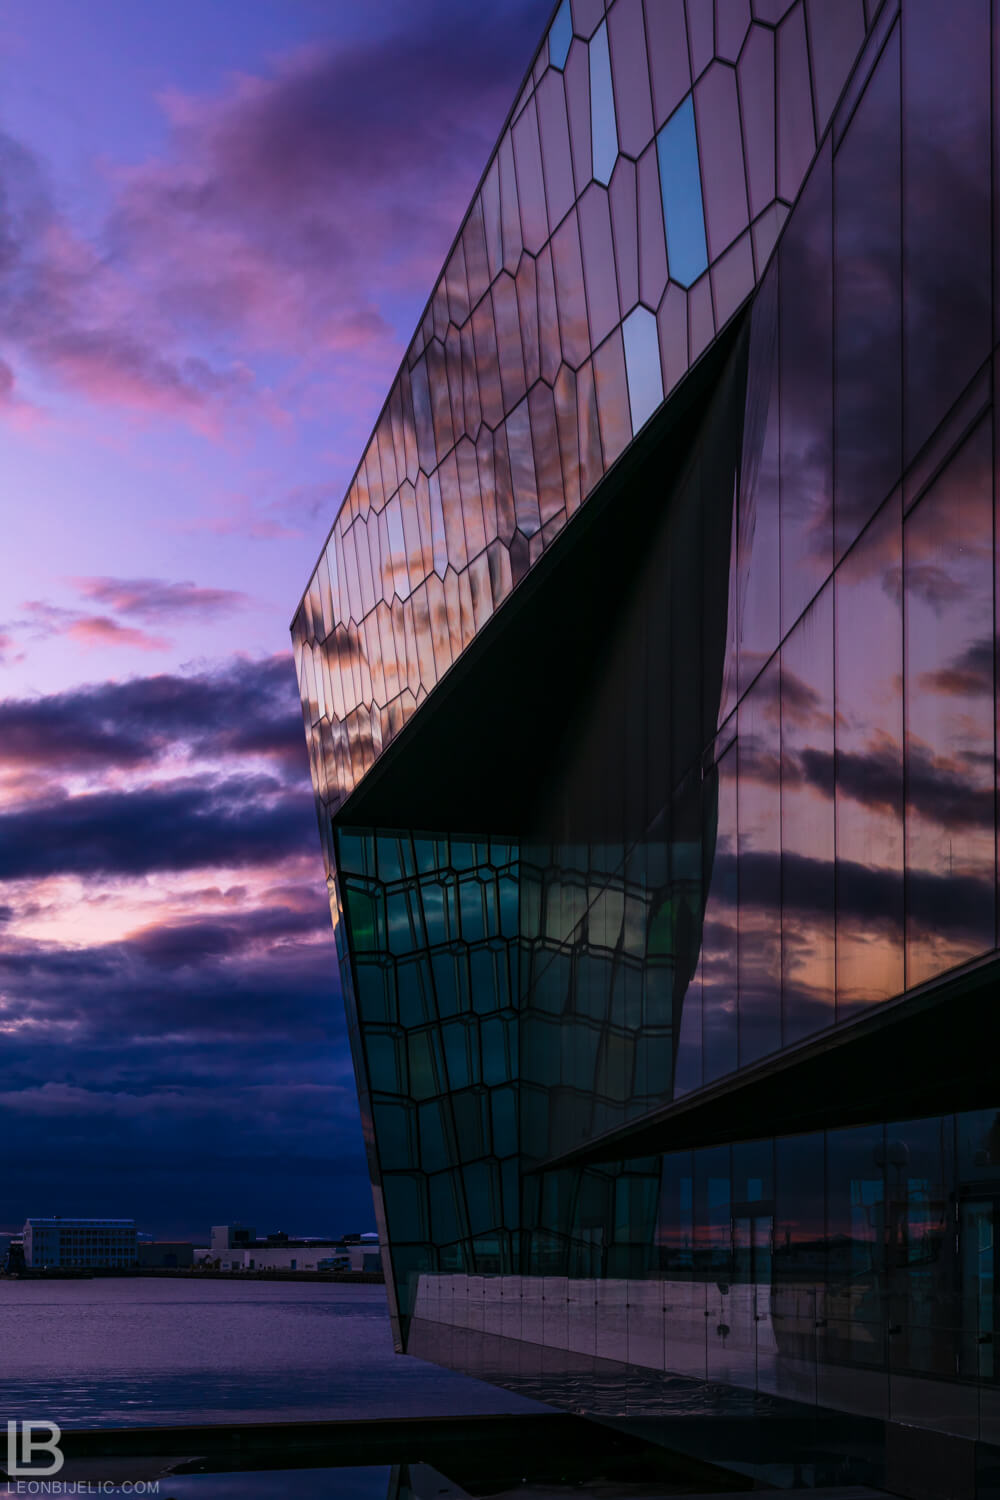 ICELAND - CAPITAL CITY REYKJAVIK - PHOTOS - SUNSET VIEW BEAUTIFUL PLANE PURPLE COLOR - the Harpa Concert Hall - Old Harbour